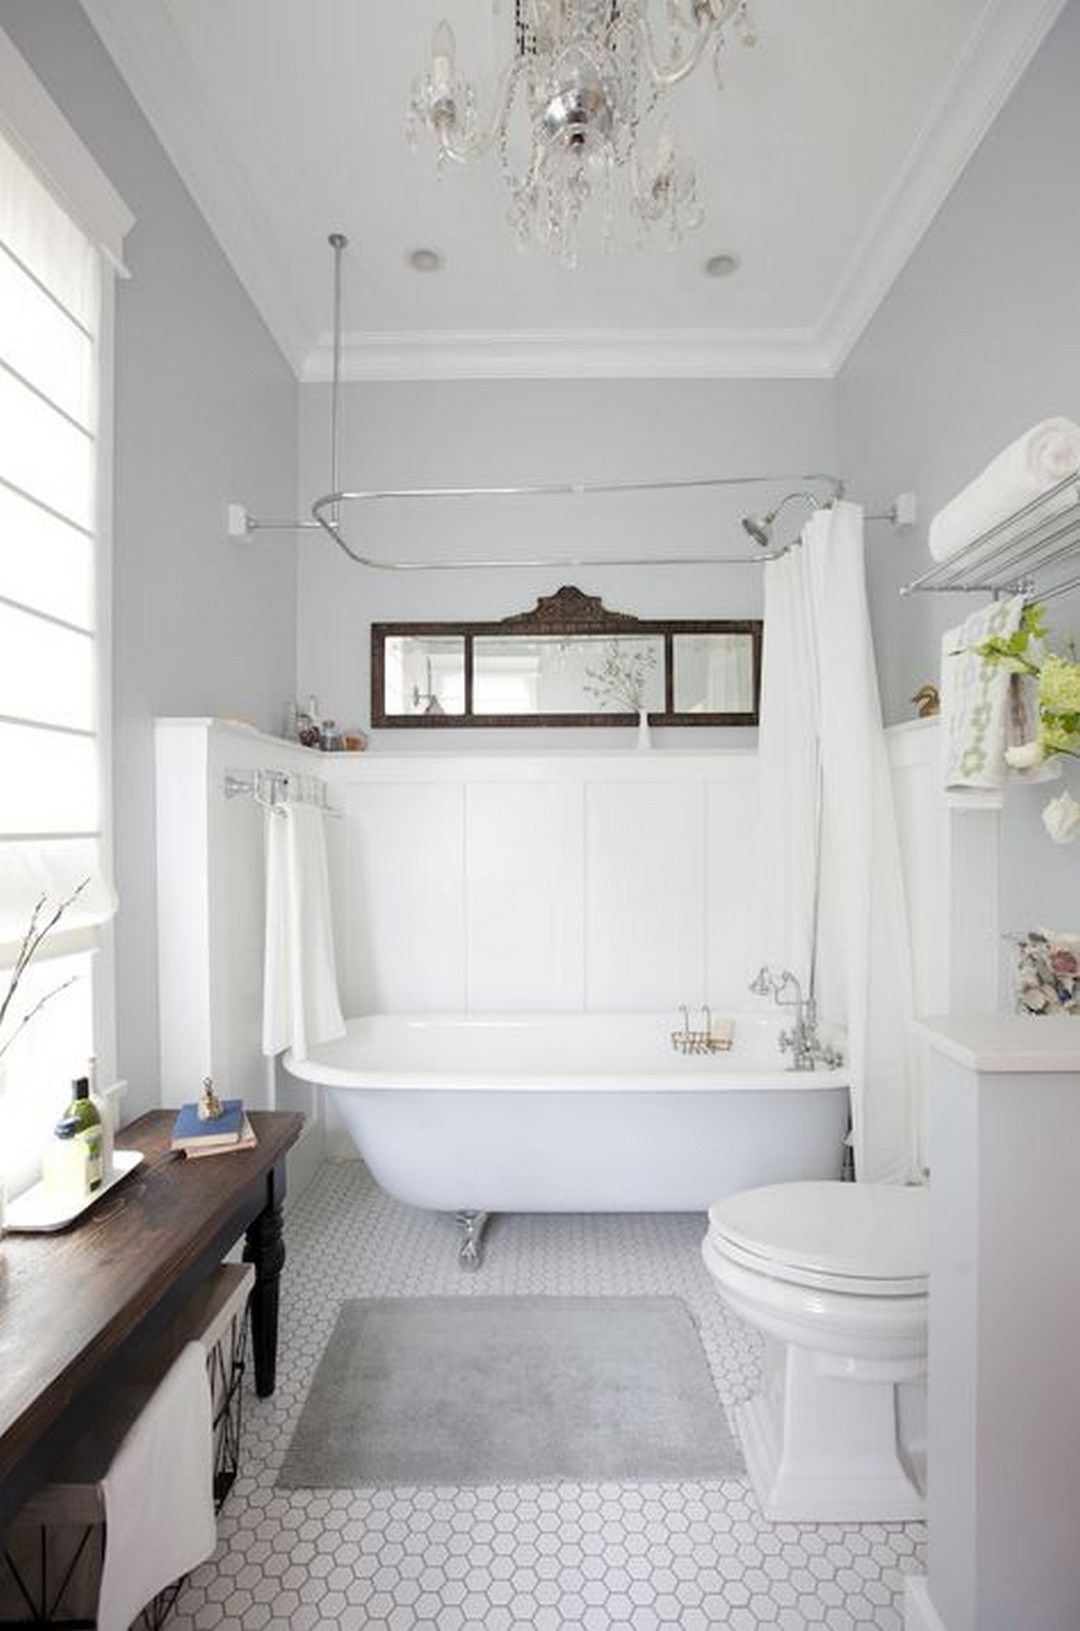 100 Small Master Bathroom Design Ideas - decoratoo on tiny front porch designs, tiny powder room designs, tiny closet designs, tiny bedroom designs, tiny patio designs, tiny eat in kitchen designs, tiny basement kitchen designs, tiny sunroom designs, tiny guest room designs,